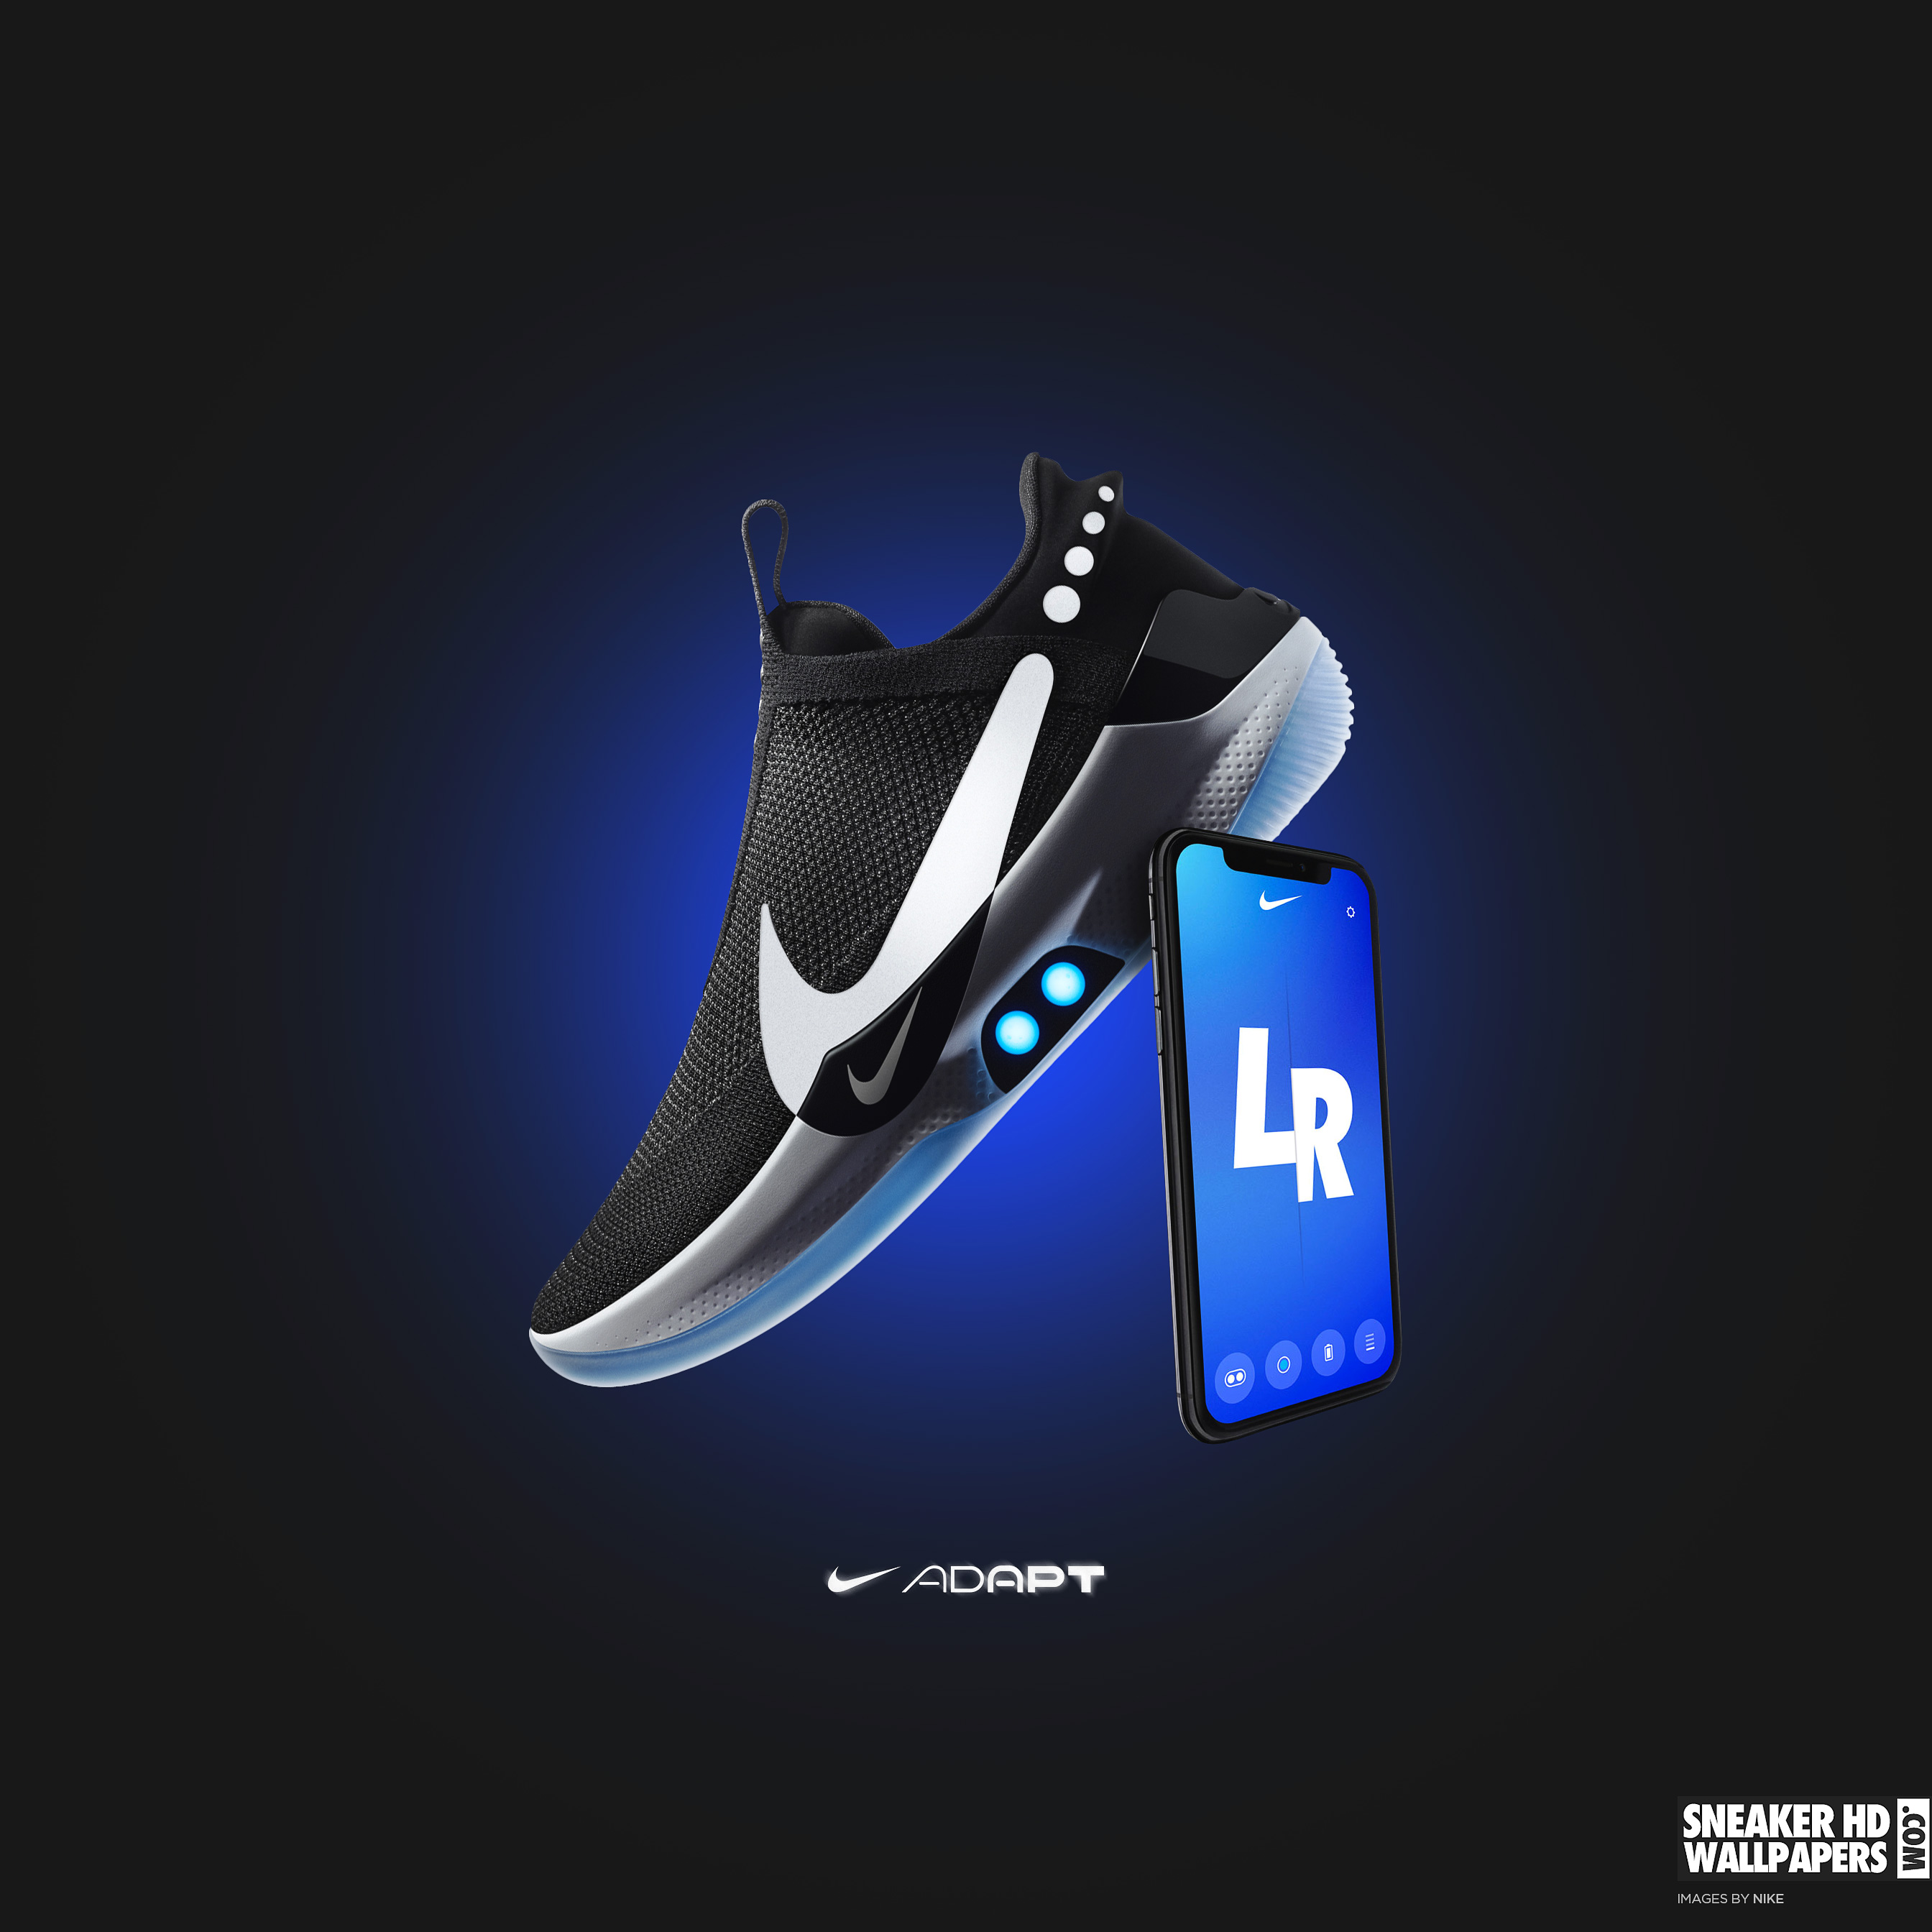 SneakerHDWallpaperscom Your favorite sneakers in HD and mobile 2688x2688